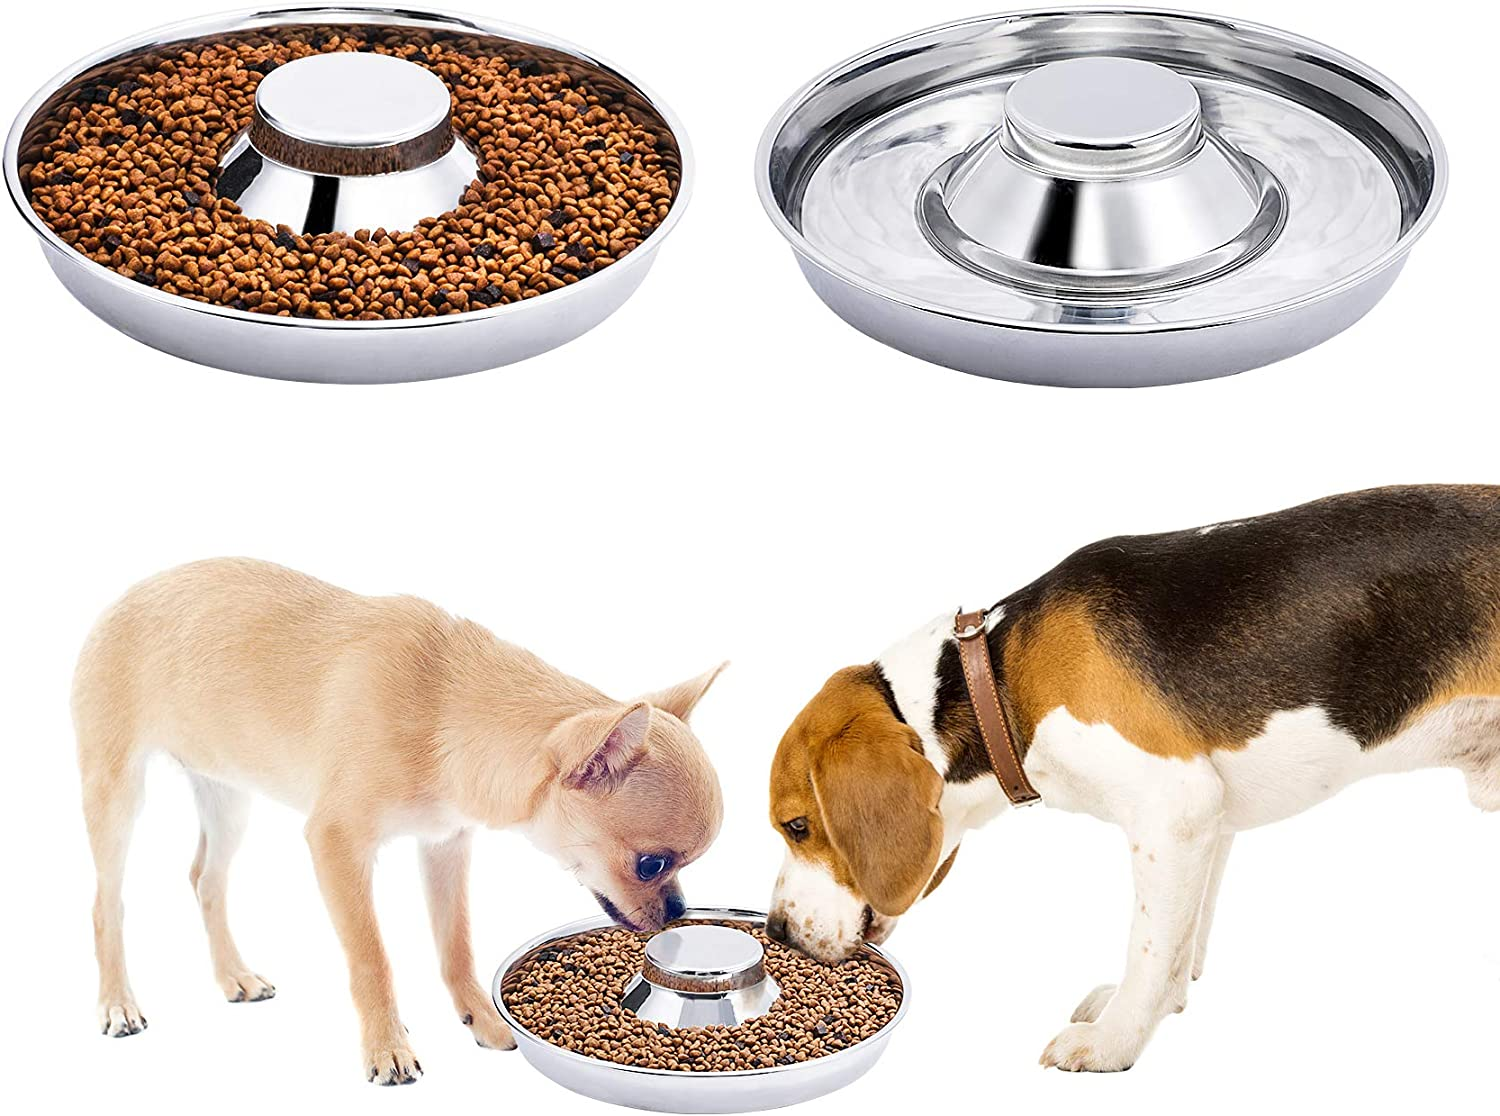 2 Pack Silver Stainless Steel Dog Bowl Puppy Slow Feeder Bowls for Food Feeding & Water Weaning Non-Skid Slow Feeder Healthy Metal Dog Bowl Dish for Small Medium Large Dog Cat Pet